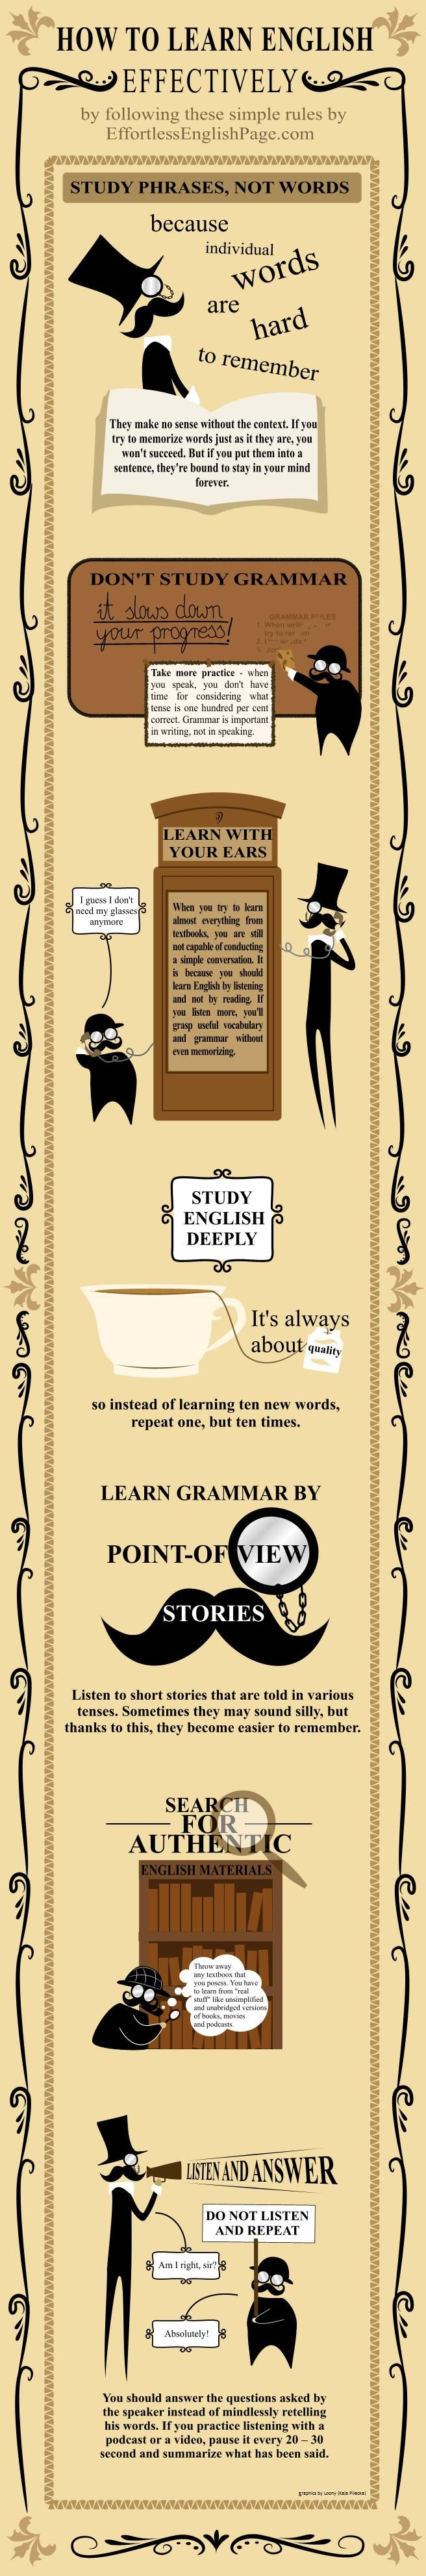 How To Learn English Effectively (Infographic) | Effortless English ✿ English Language / Learning English / Easy English / English speaking skills / English vocabulary / Language Learning ✿ Repin for later!